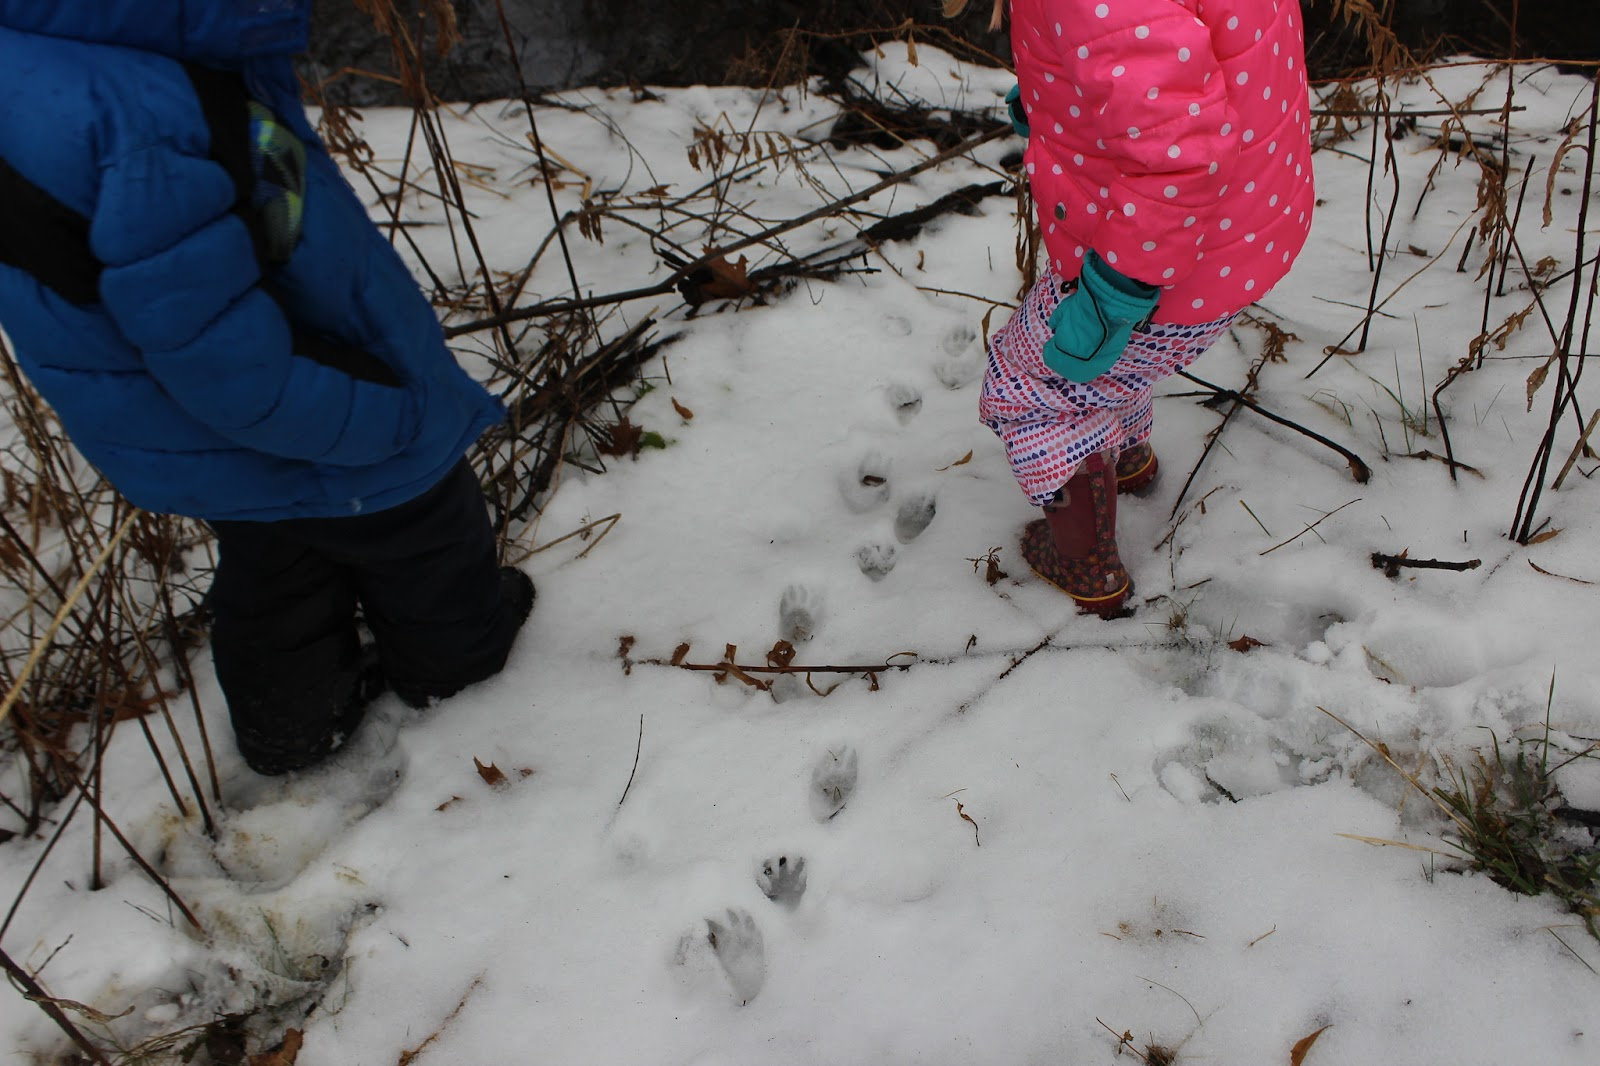 Two small children tracking animals in snow.